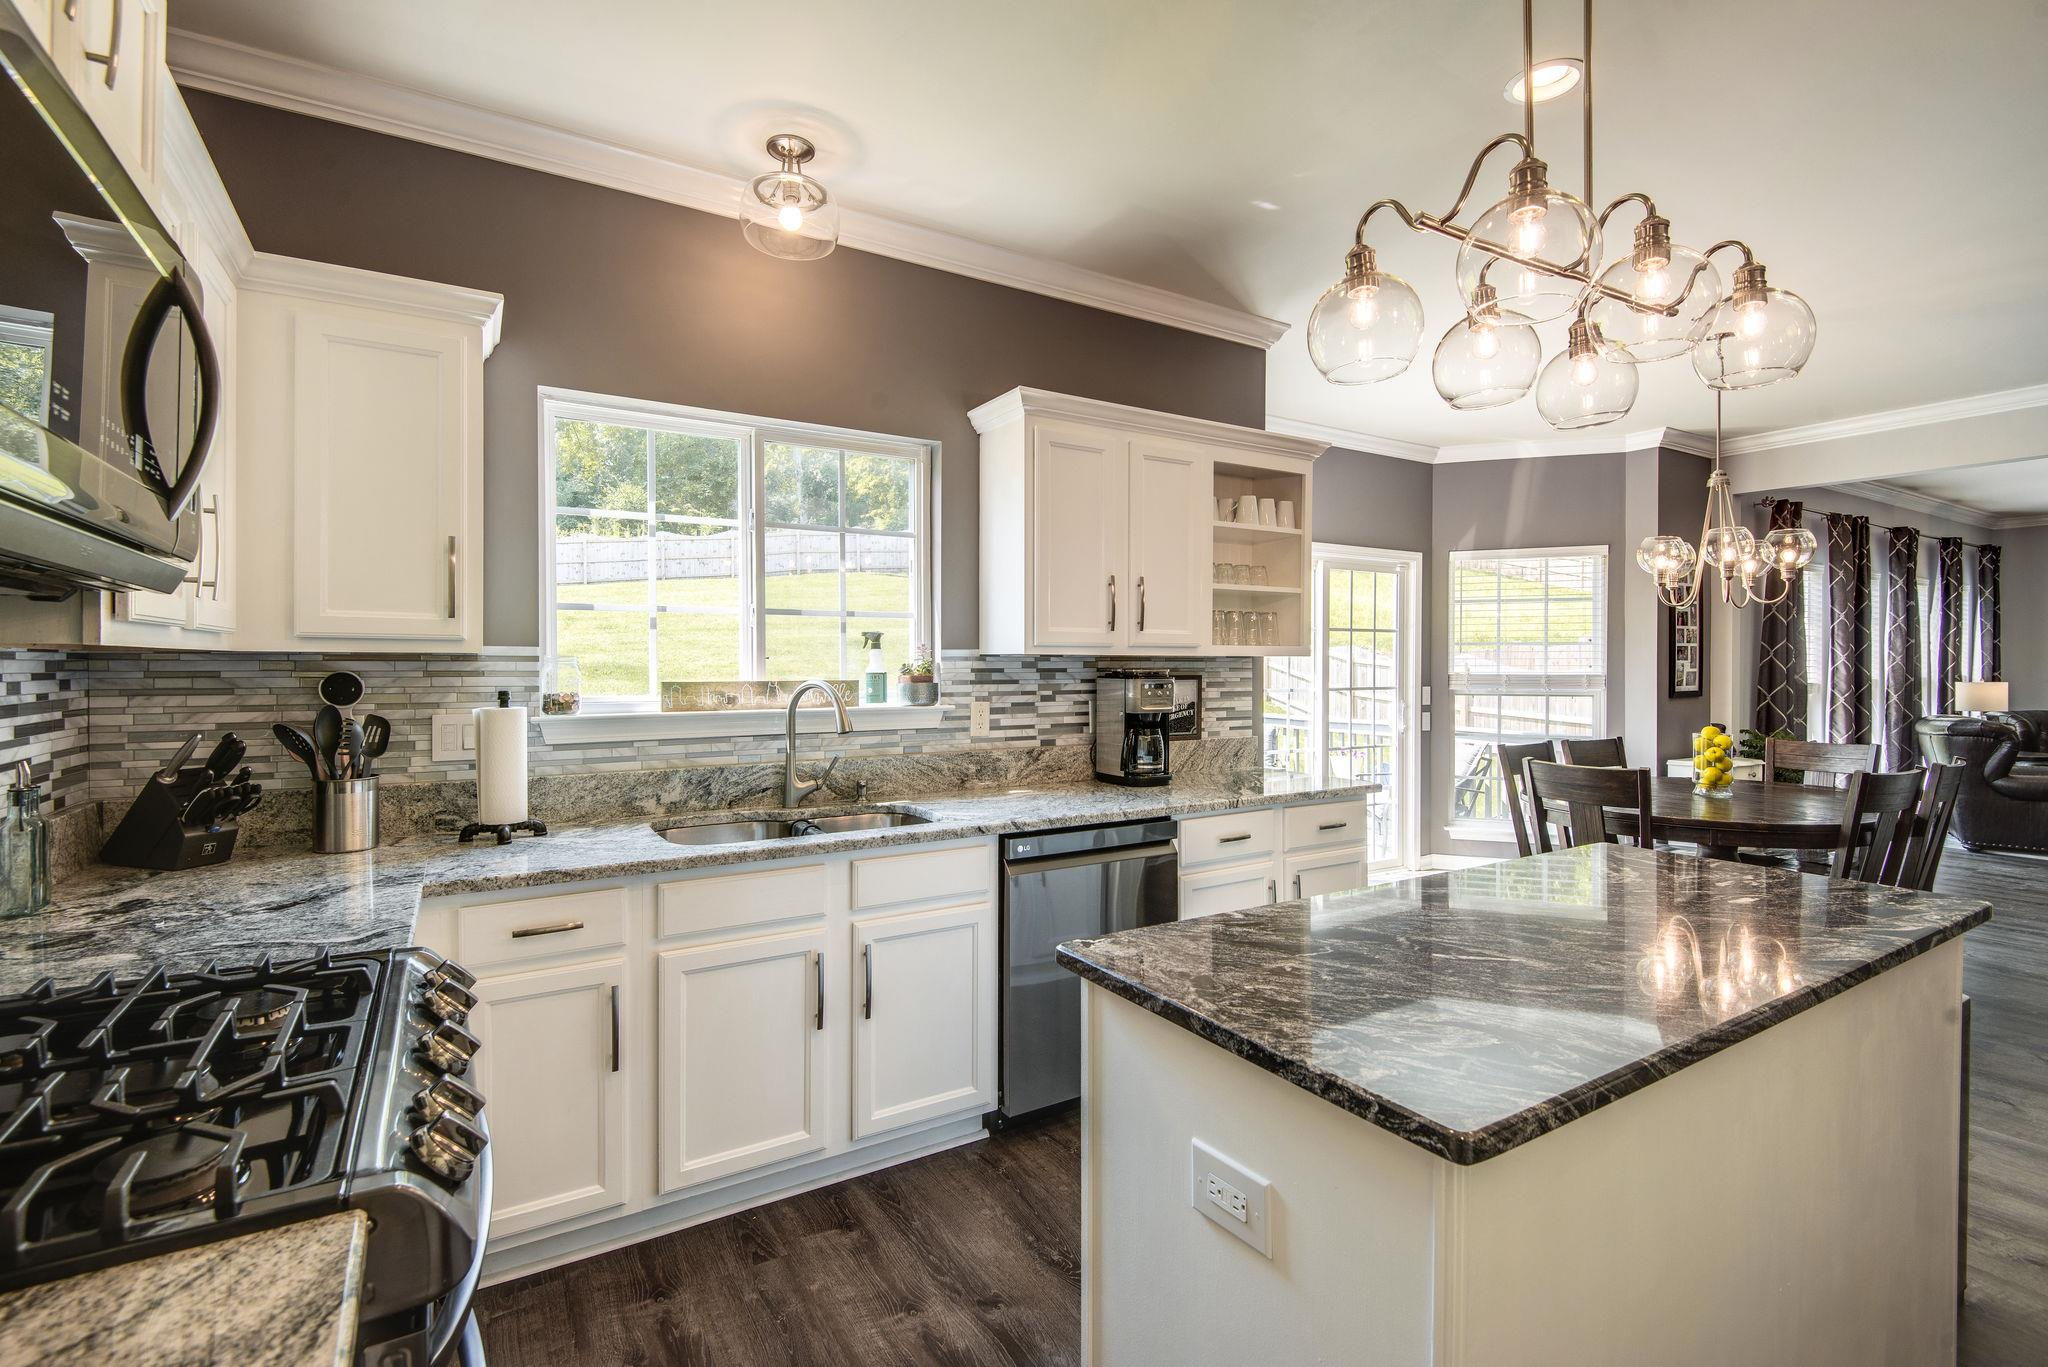 6533 Banbury Xing, Brentwood, TN 37027 - Brentwood, TN real estate listing